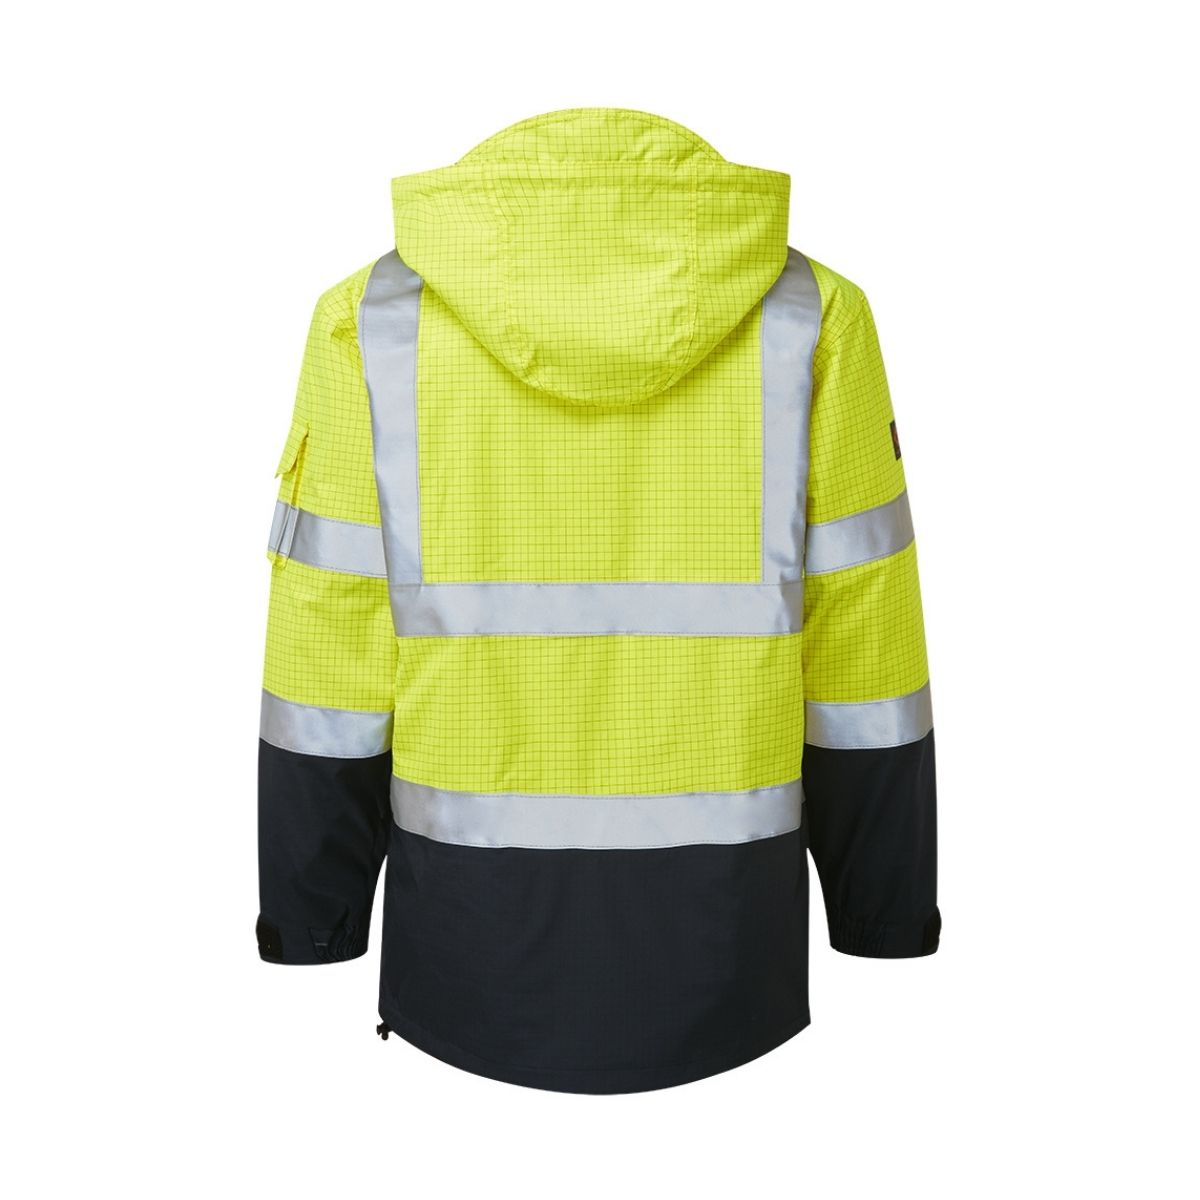 AS9464 HAZTEC® Boulton FR AS Hi-Visibility Waterproof Traffic Jacket - Yellow_Navy Back